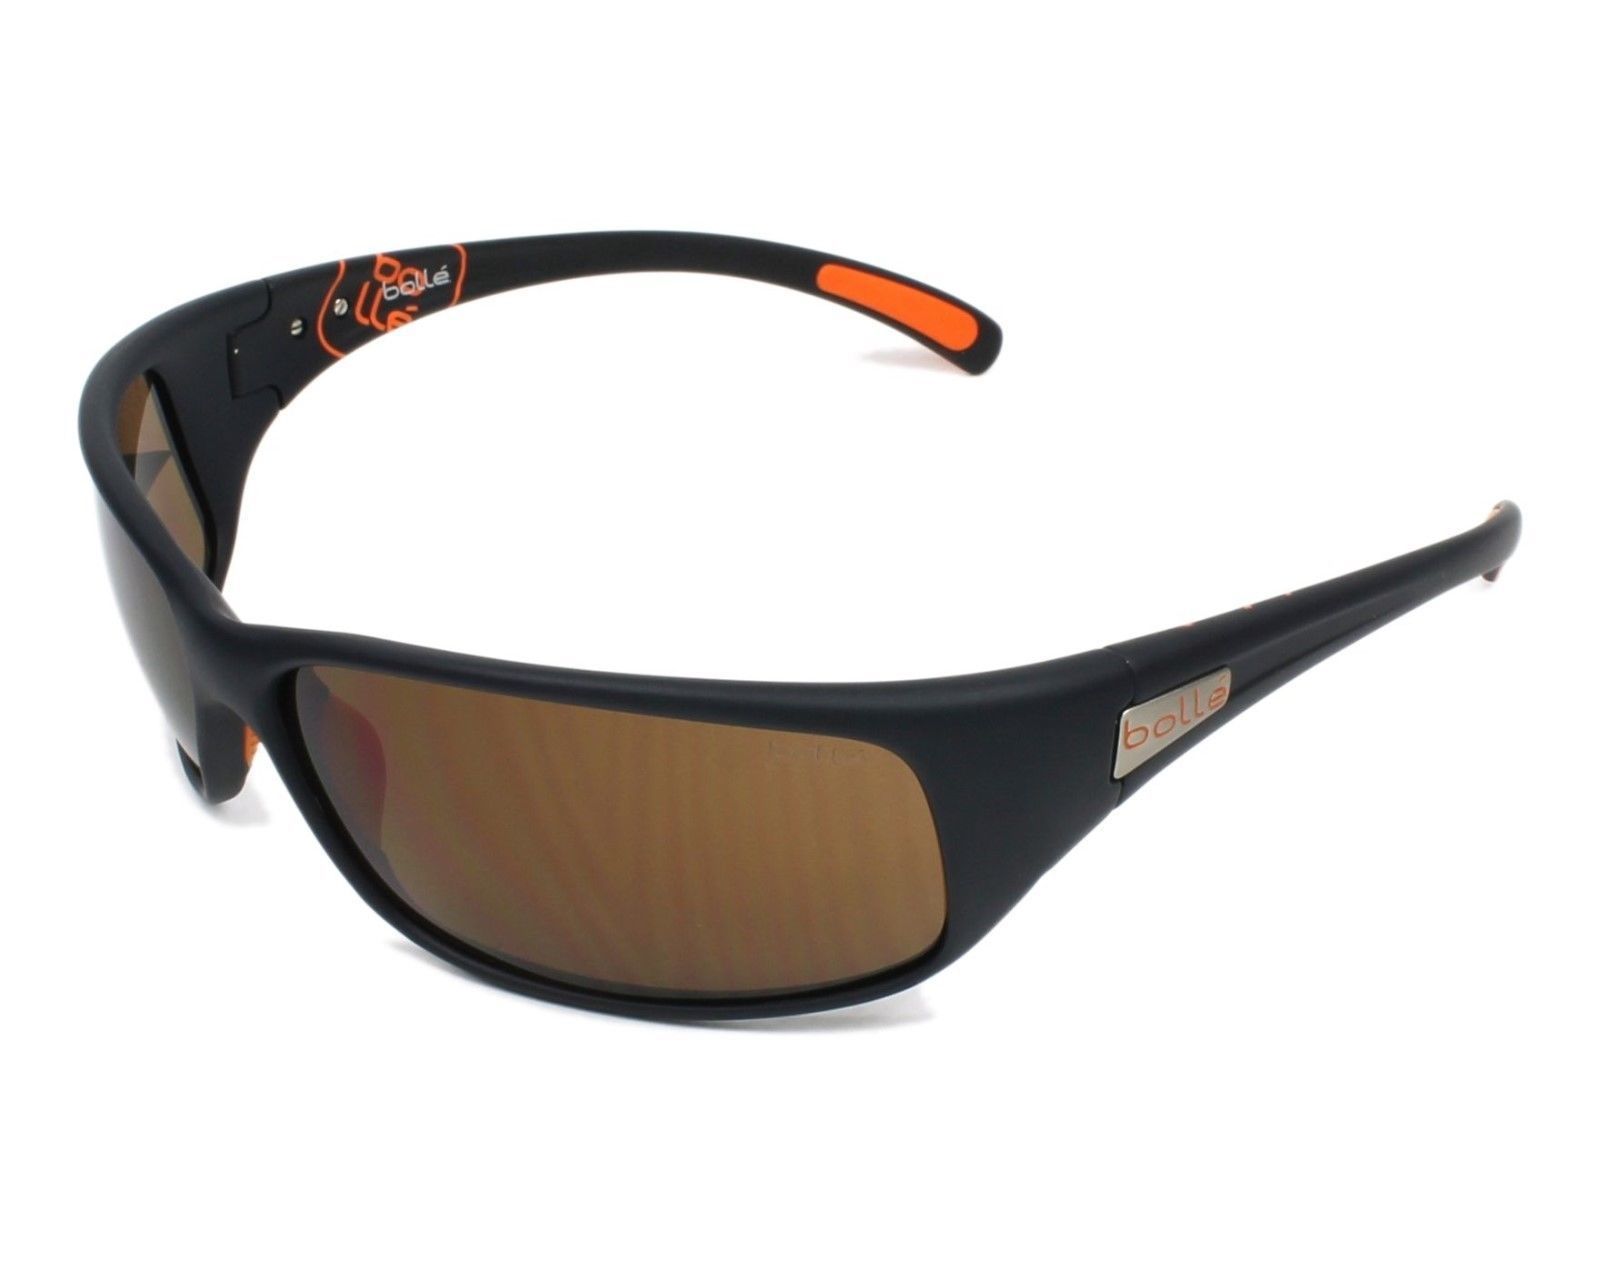 ac53cfad36f Bolle Recoil Sunglasses - 12251 - Matte Dark and 9 similar items